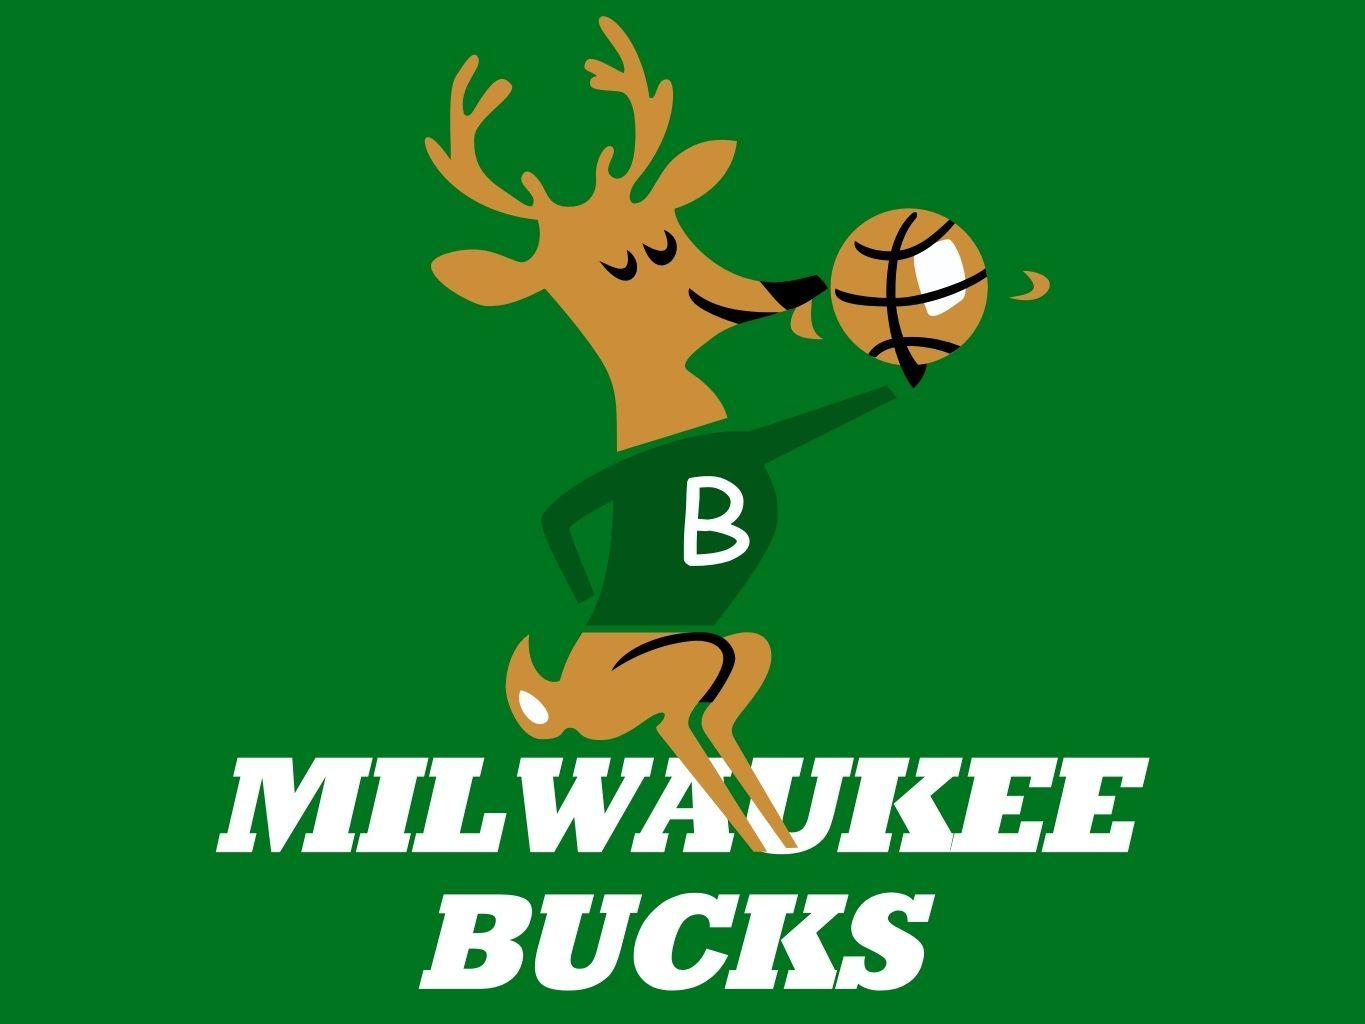 36 best images about Milwaukee Bucks on Pinterest | Logos, Canvas ...